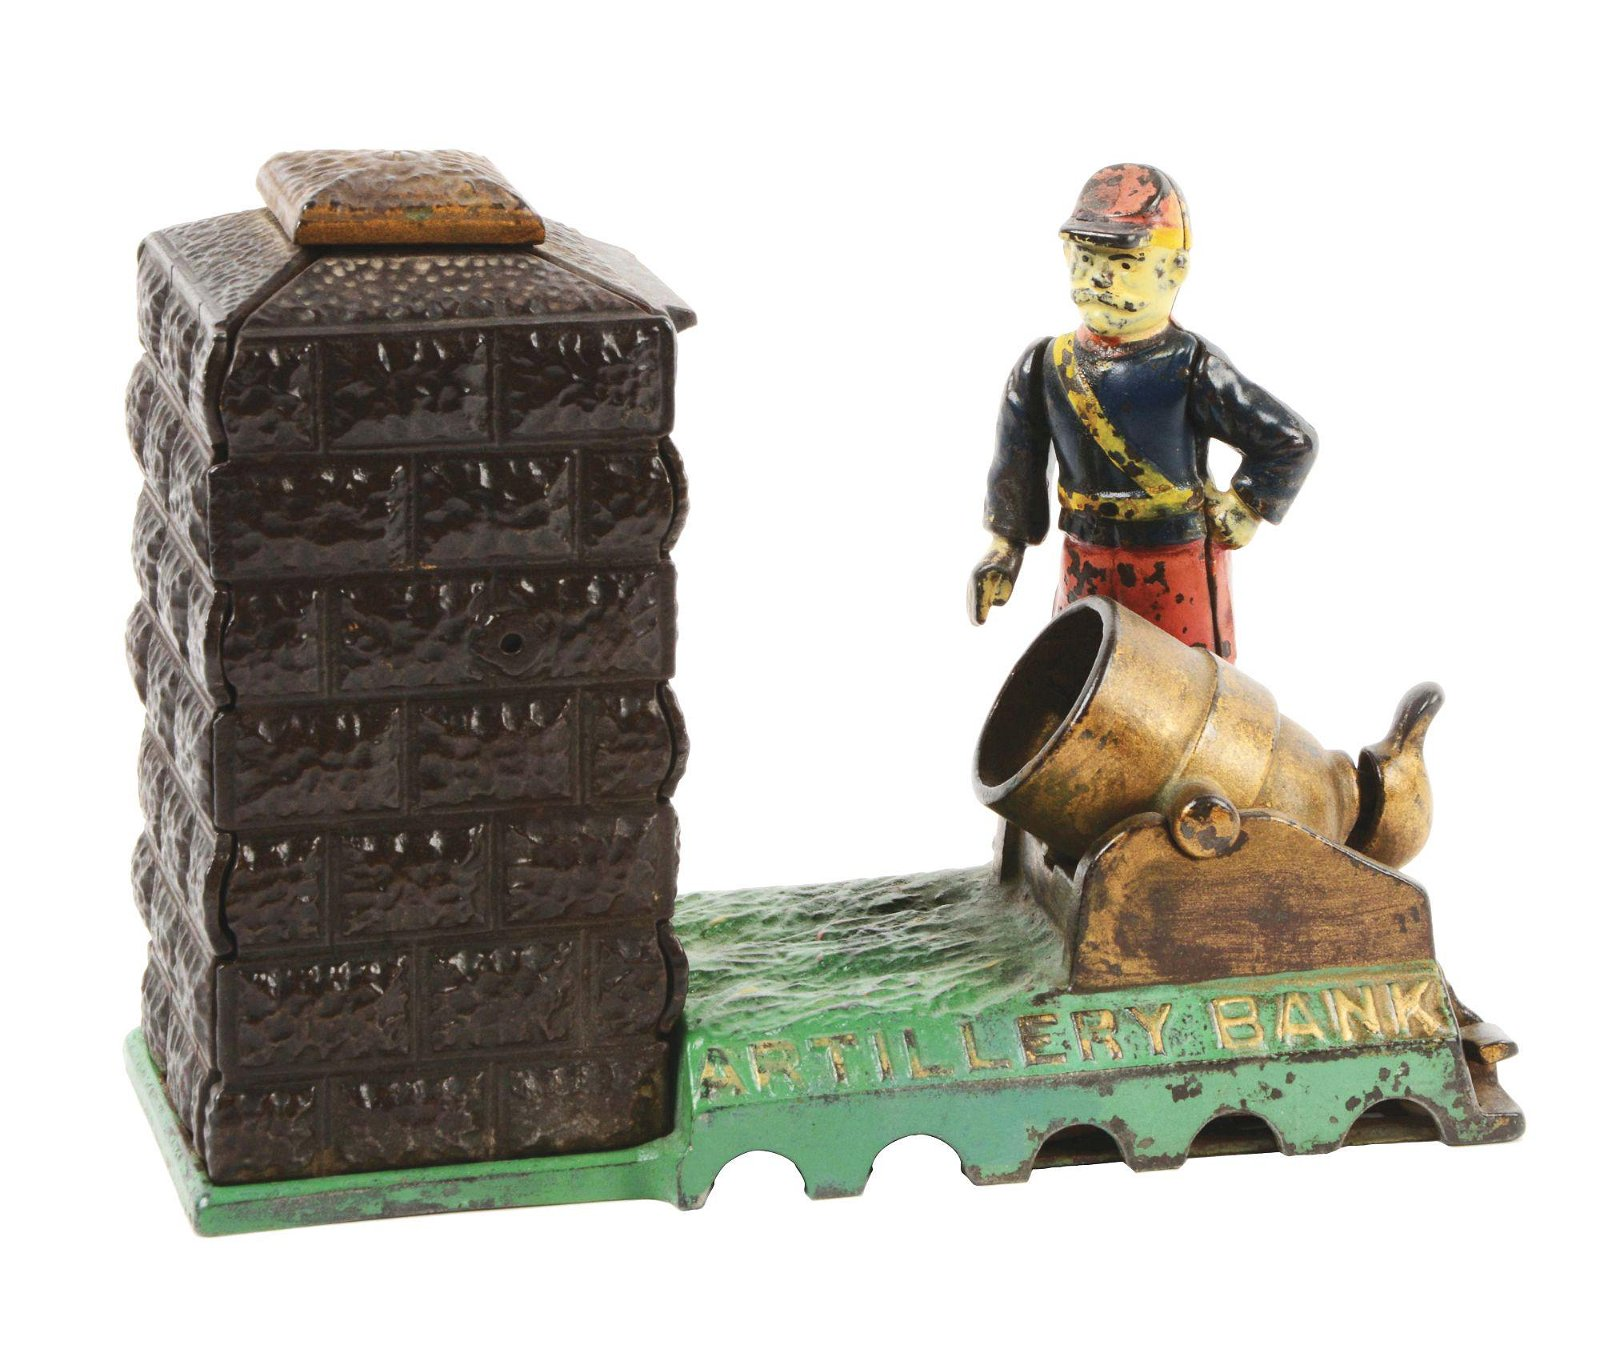 J & E STEVENS ARTILLERY CAST IRON MECHANICAL BANK.